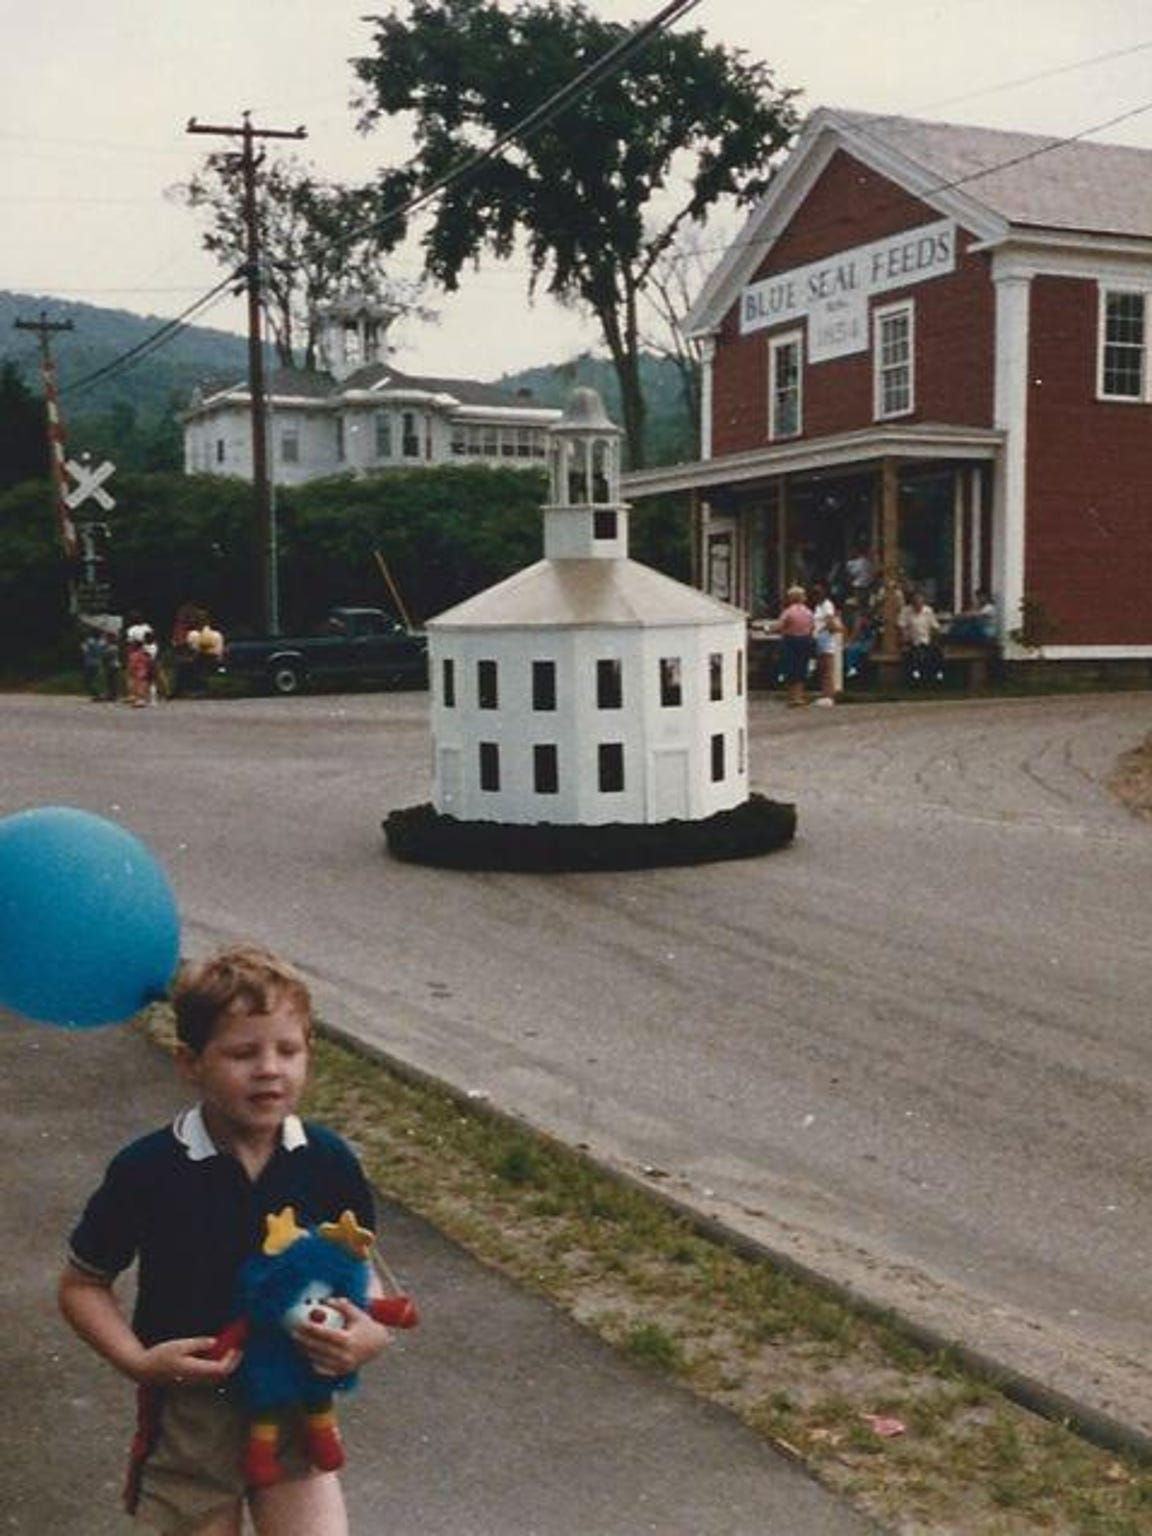 This miniature Old Round Church participated in many Fourth of July parades in the 1970s and 1980s. This is a 1982 photo.